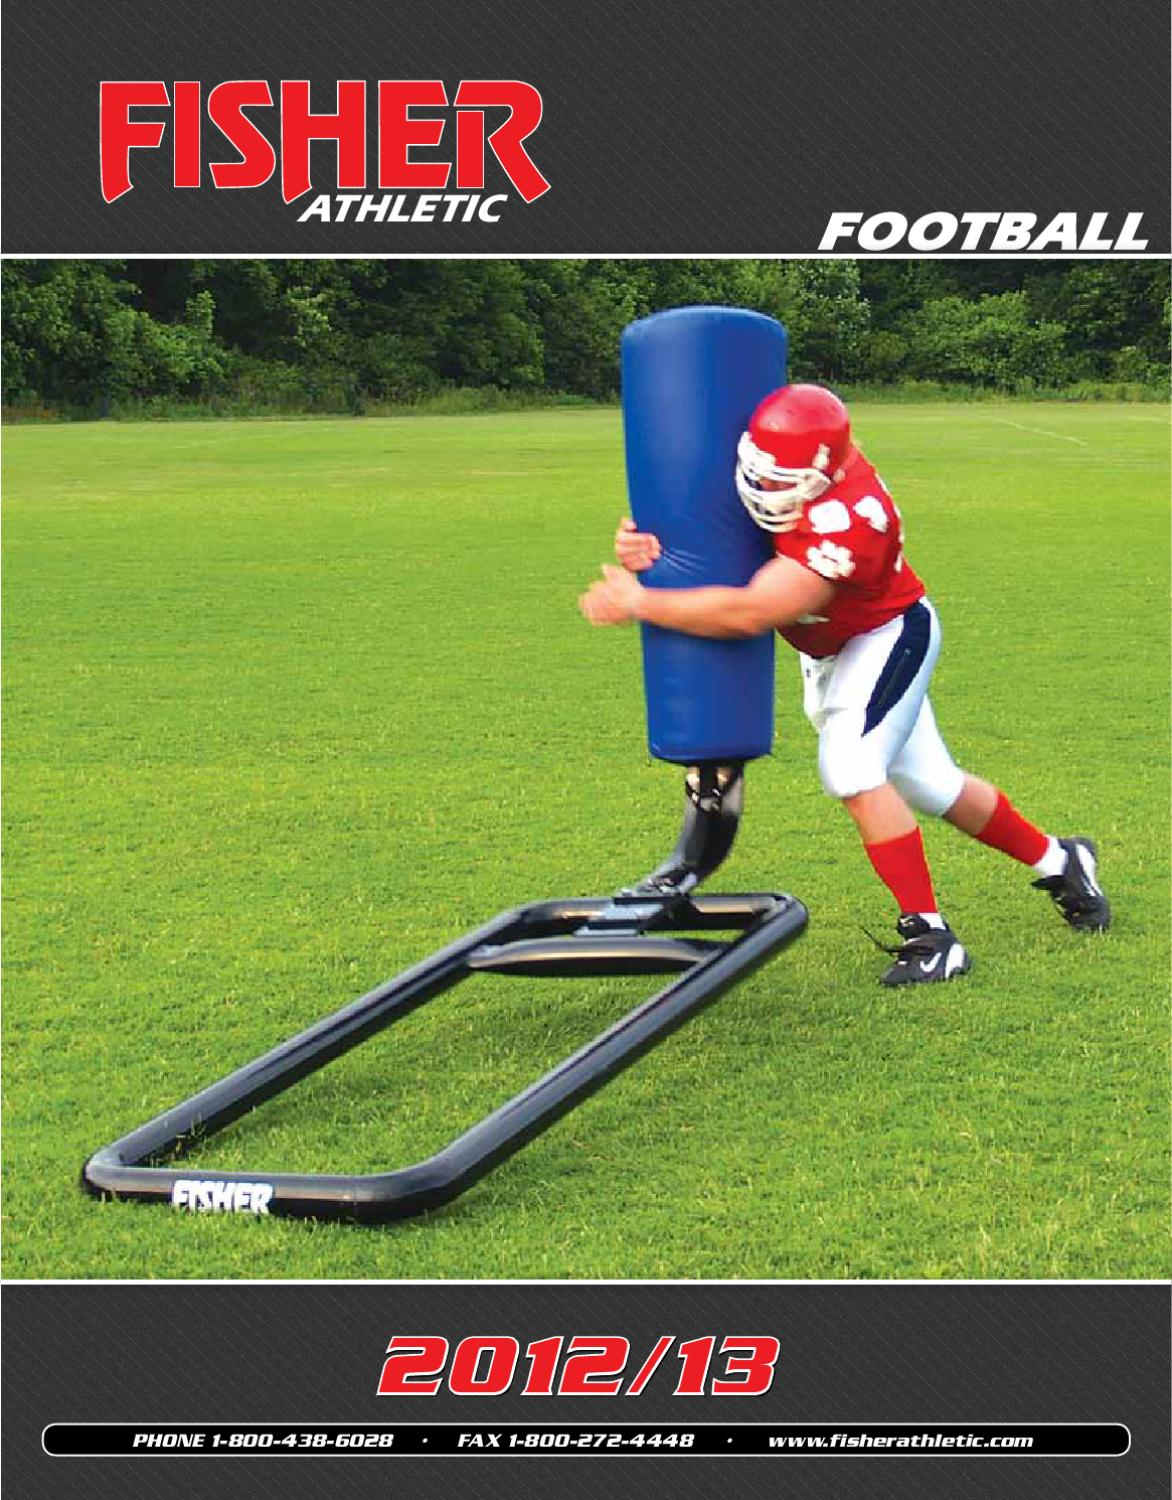 8a4c66c0b 2012-13 Fisher Football Catalog by Fisher Athletic - issuu